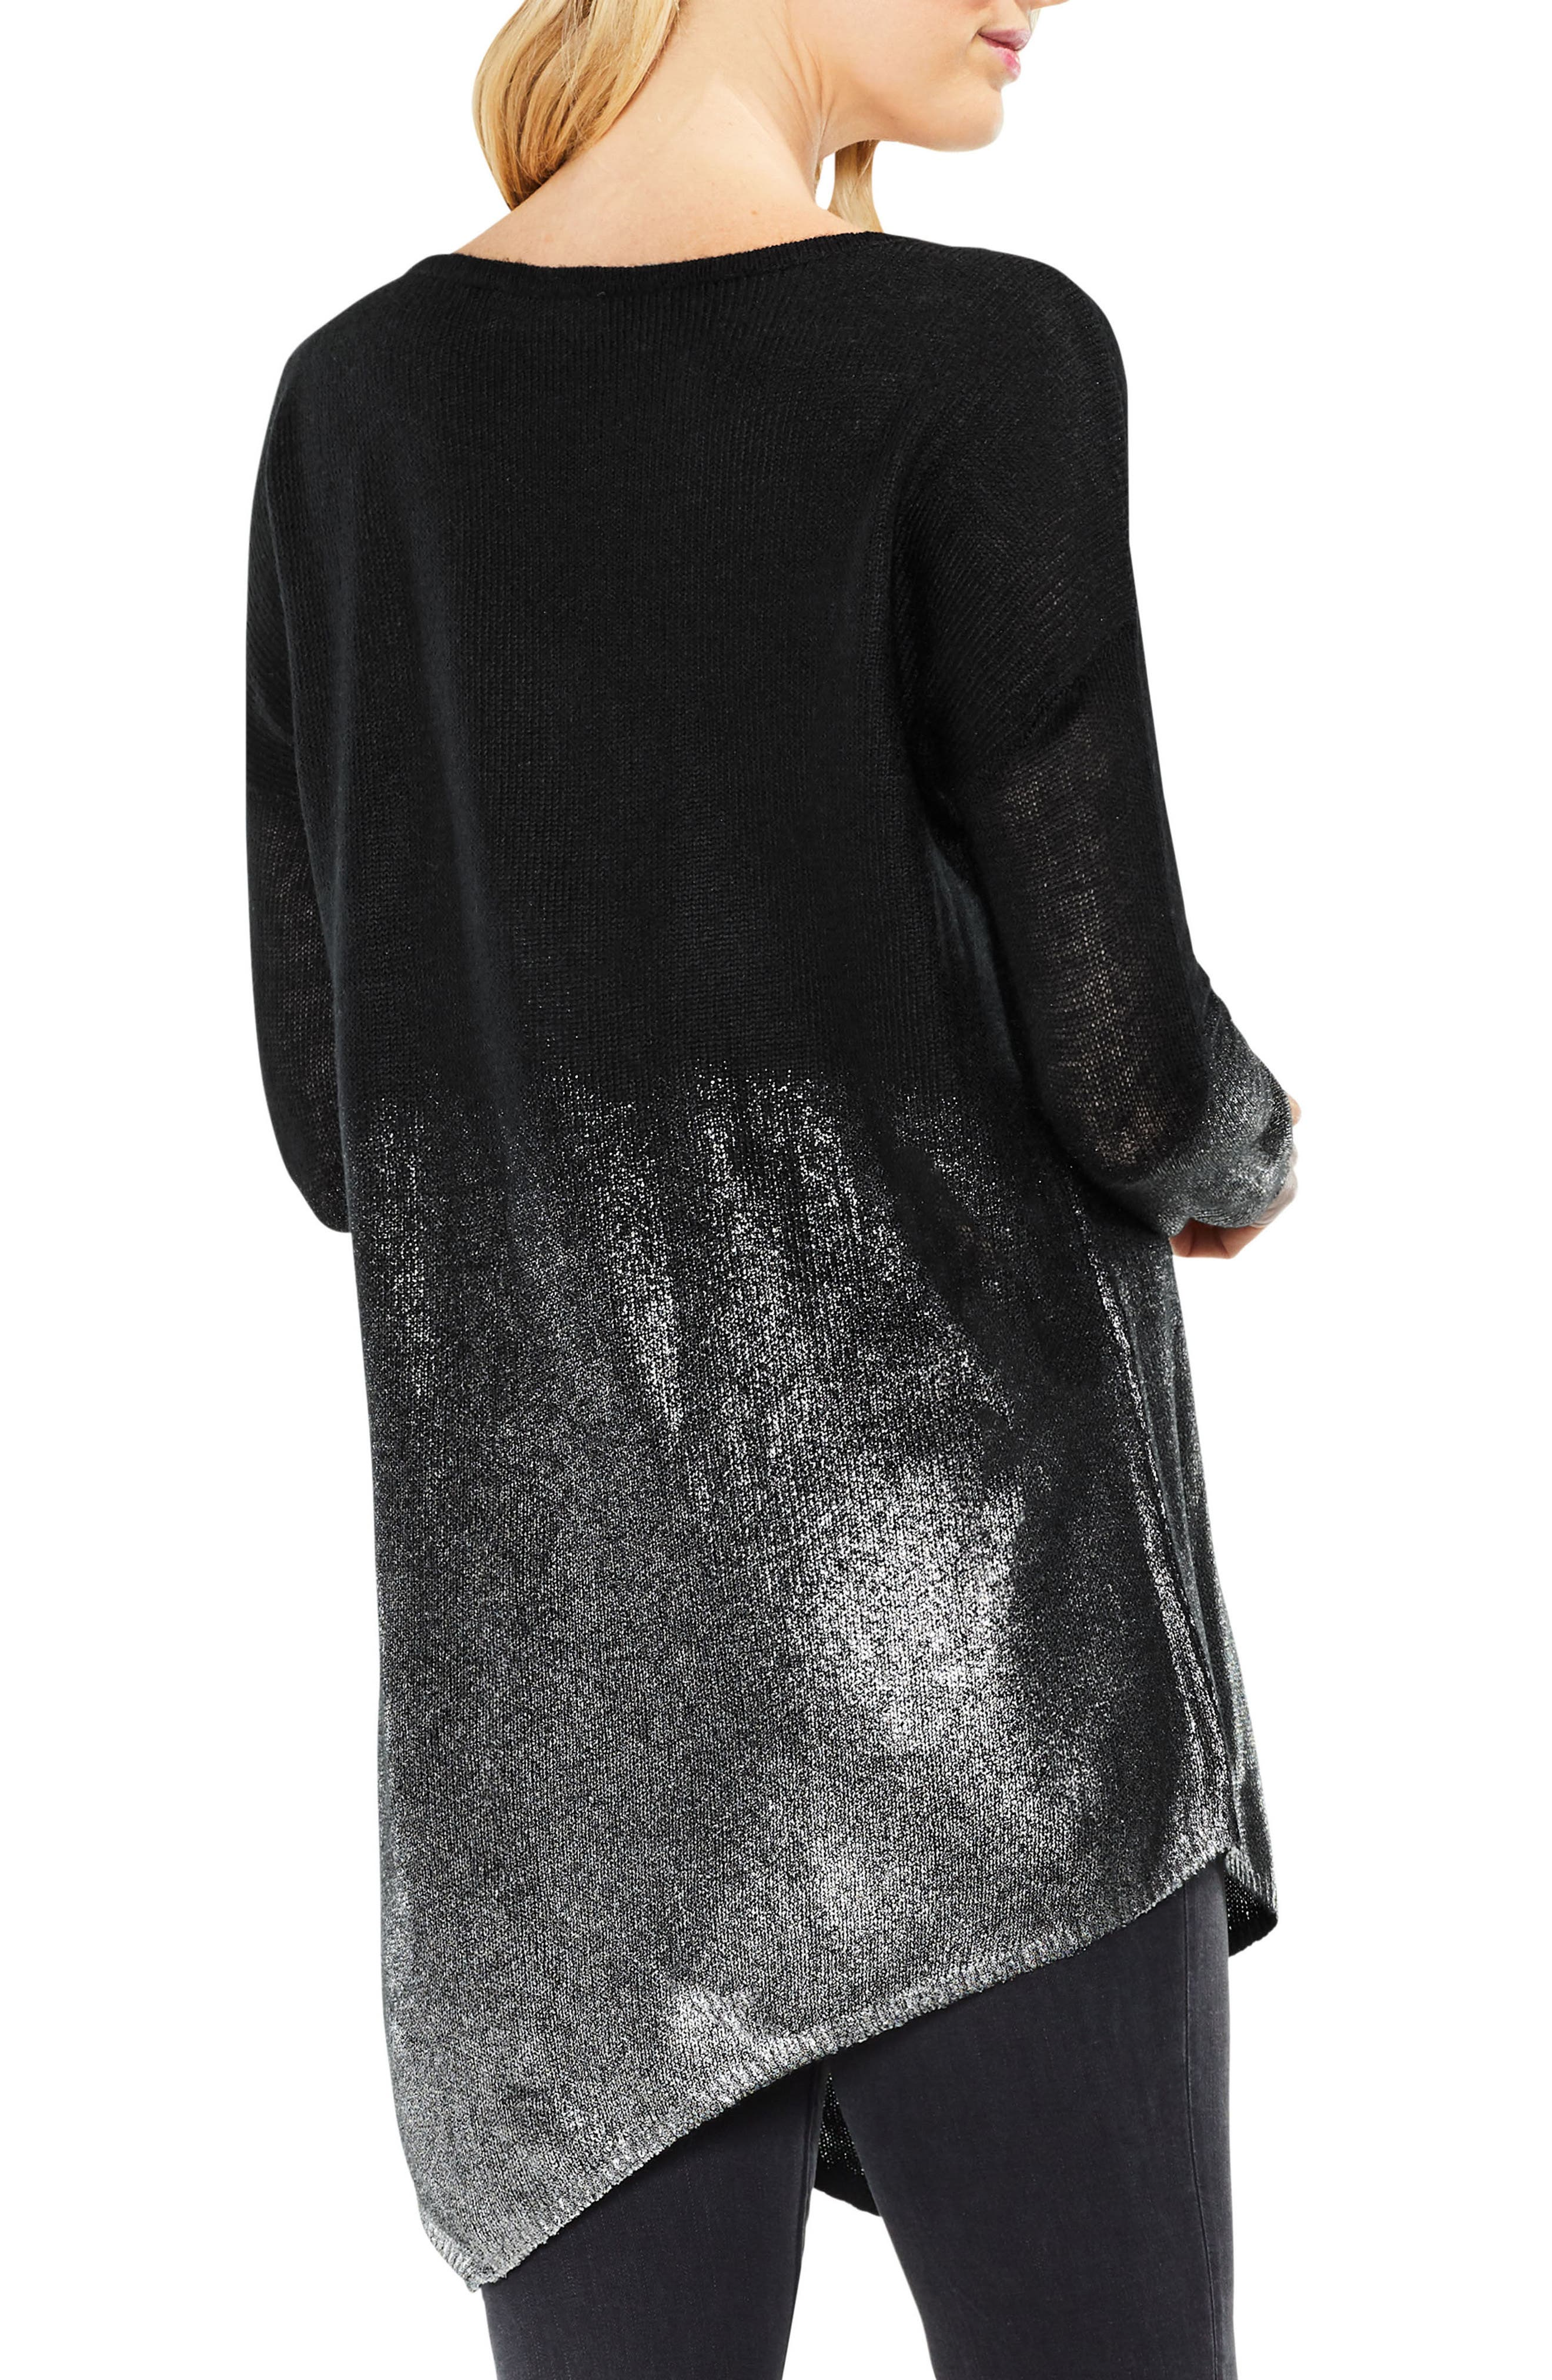 Alternate Image 3  - Two by Vince Camuto Asymmetrical Metallic Ombré Sweater